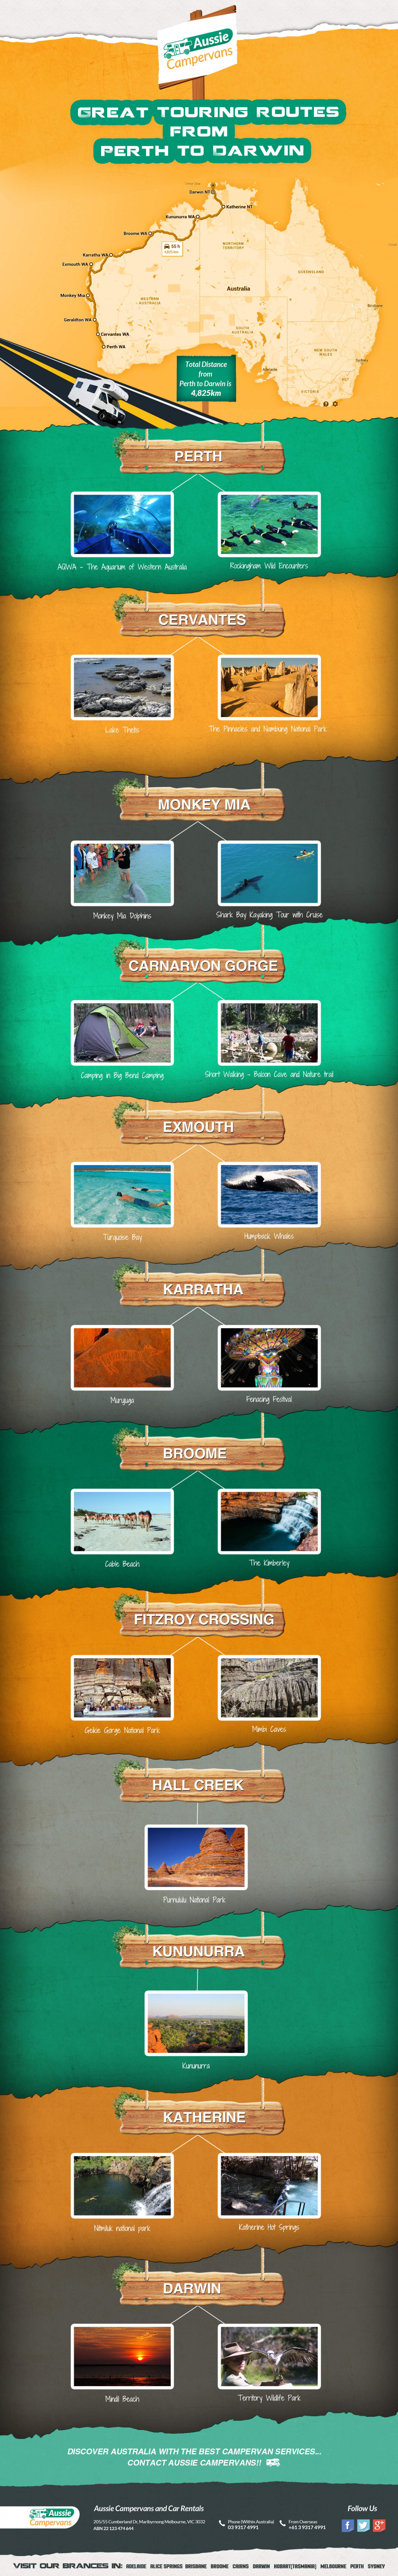 DISCOVER GREAT CAMPERVAN ROUTES FROM PERTH TO DARWIN Infographic